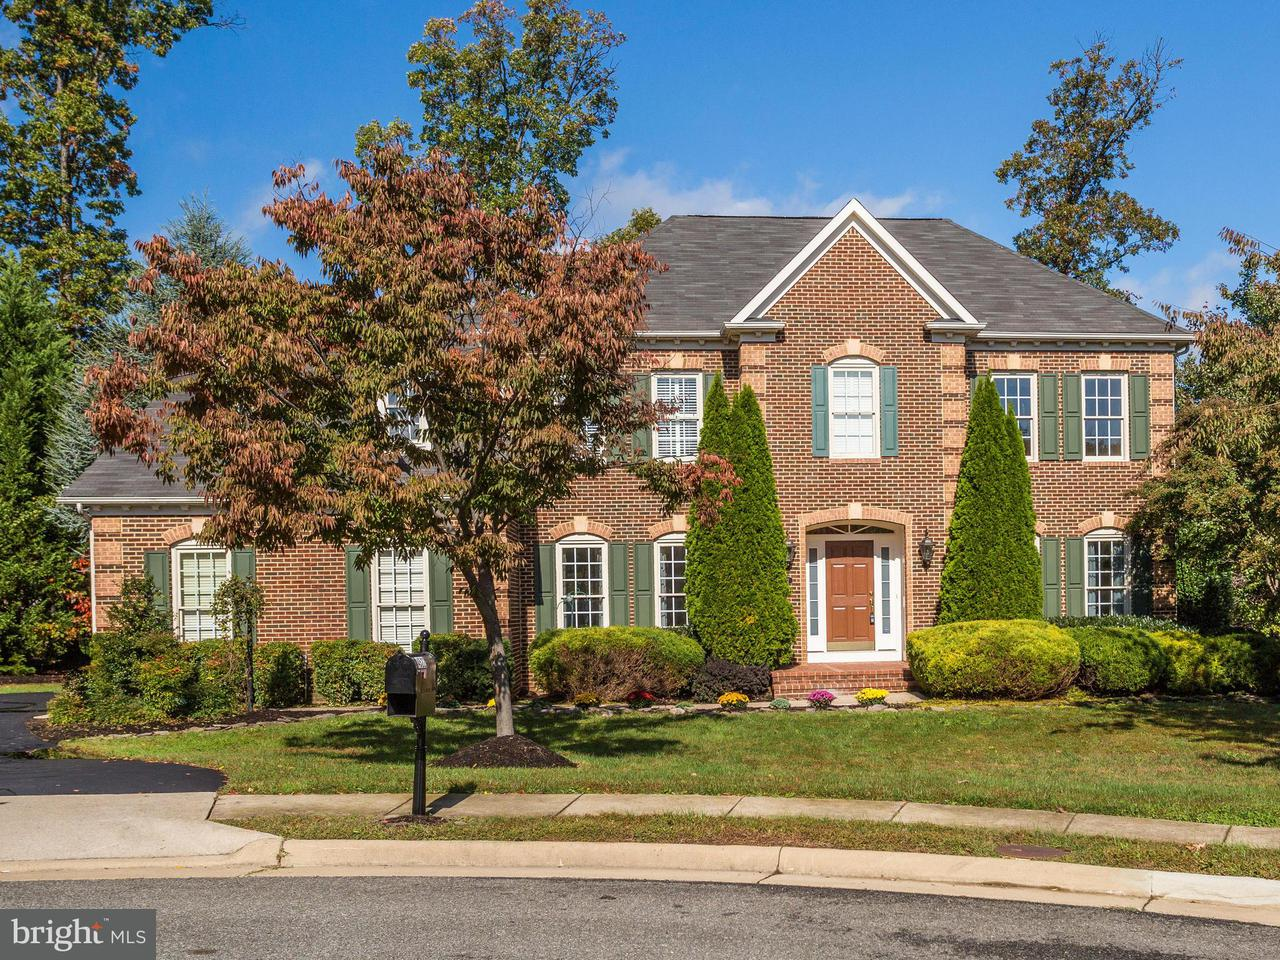 Single Family Home for Sale at 4522 FAIRWAY DOWNS Court 4522 FAIRWAY DOWNS Court Alexandria, Virginia 22312 United States